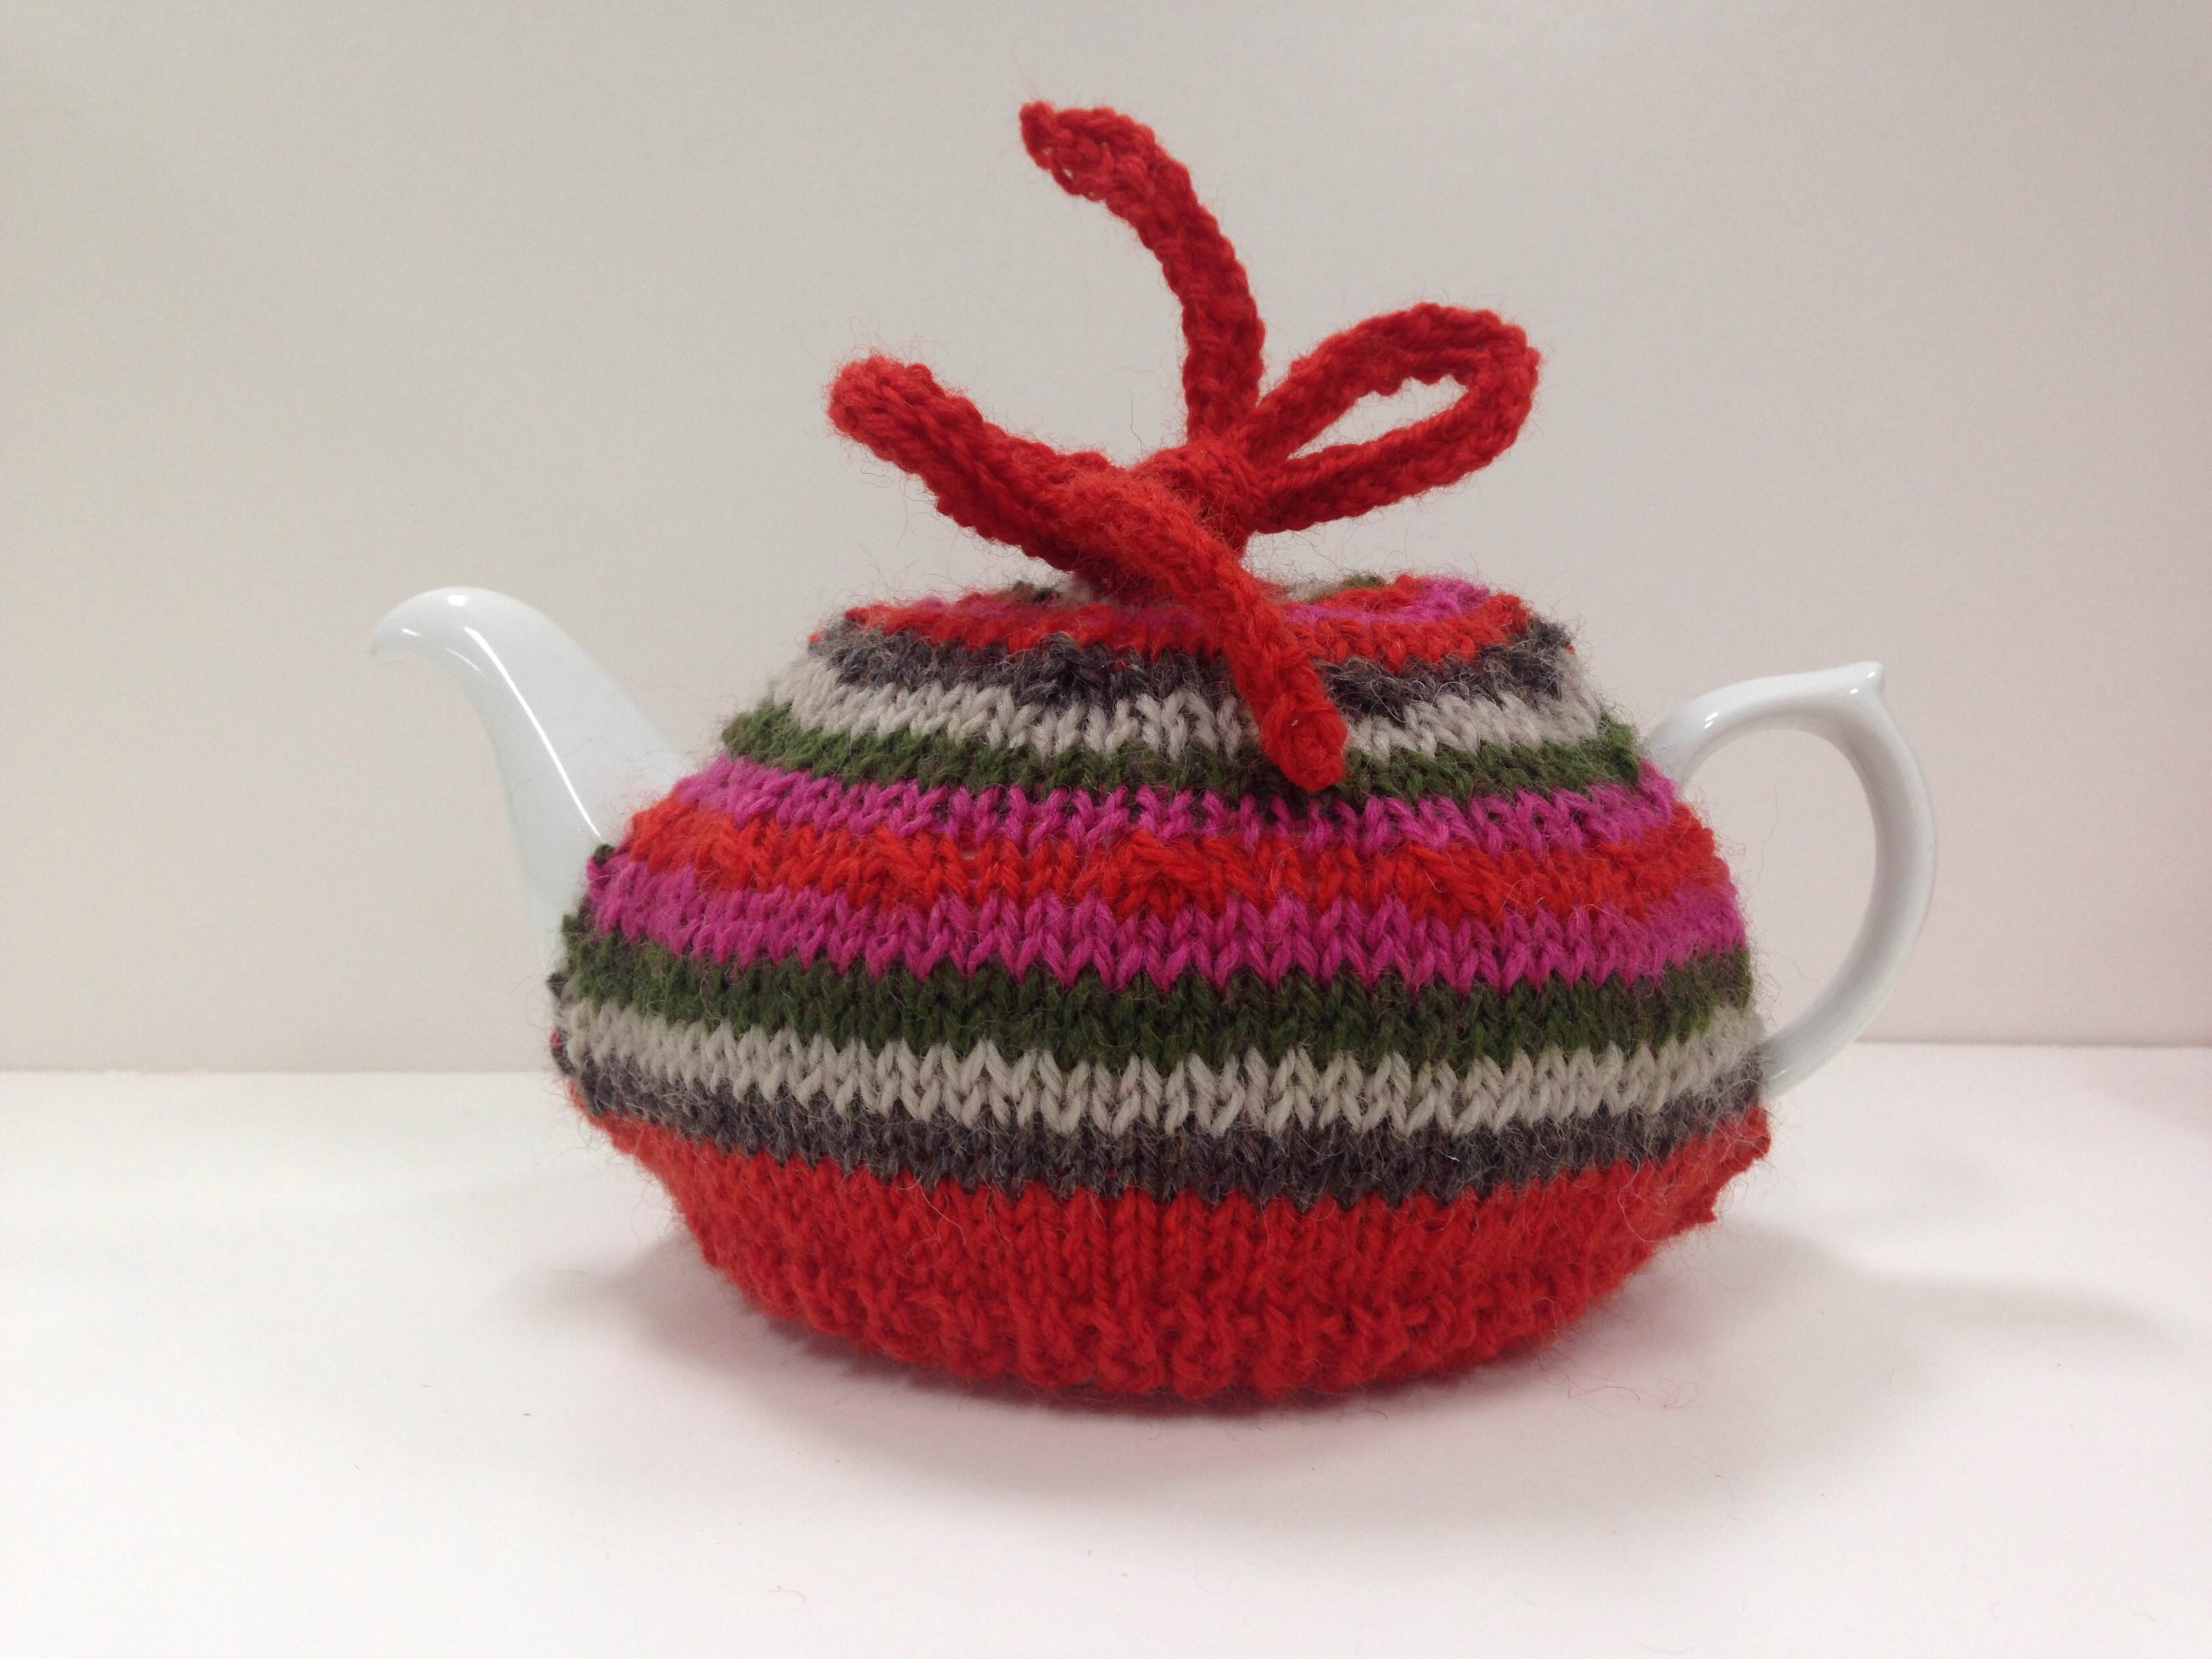 Knitted Tea Cosy Pattern Easy Get Cosy Free Tea Cosy Pattern Lincraft Lincraft